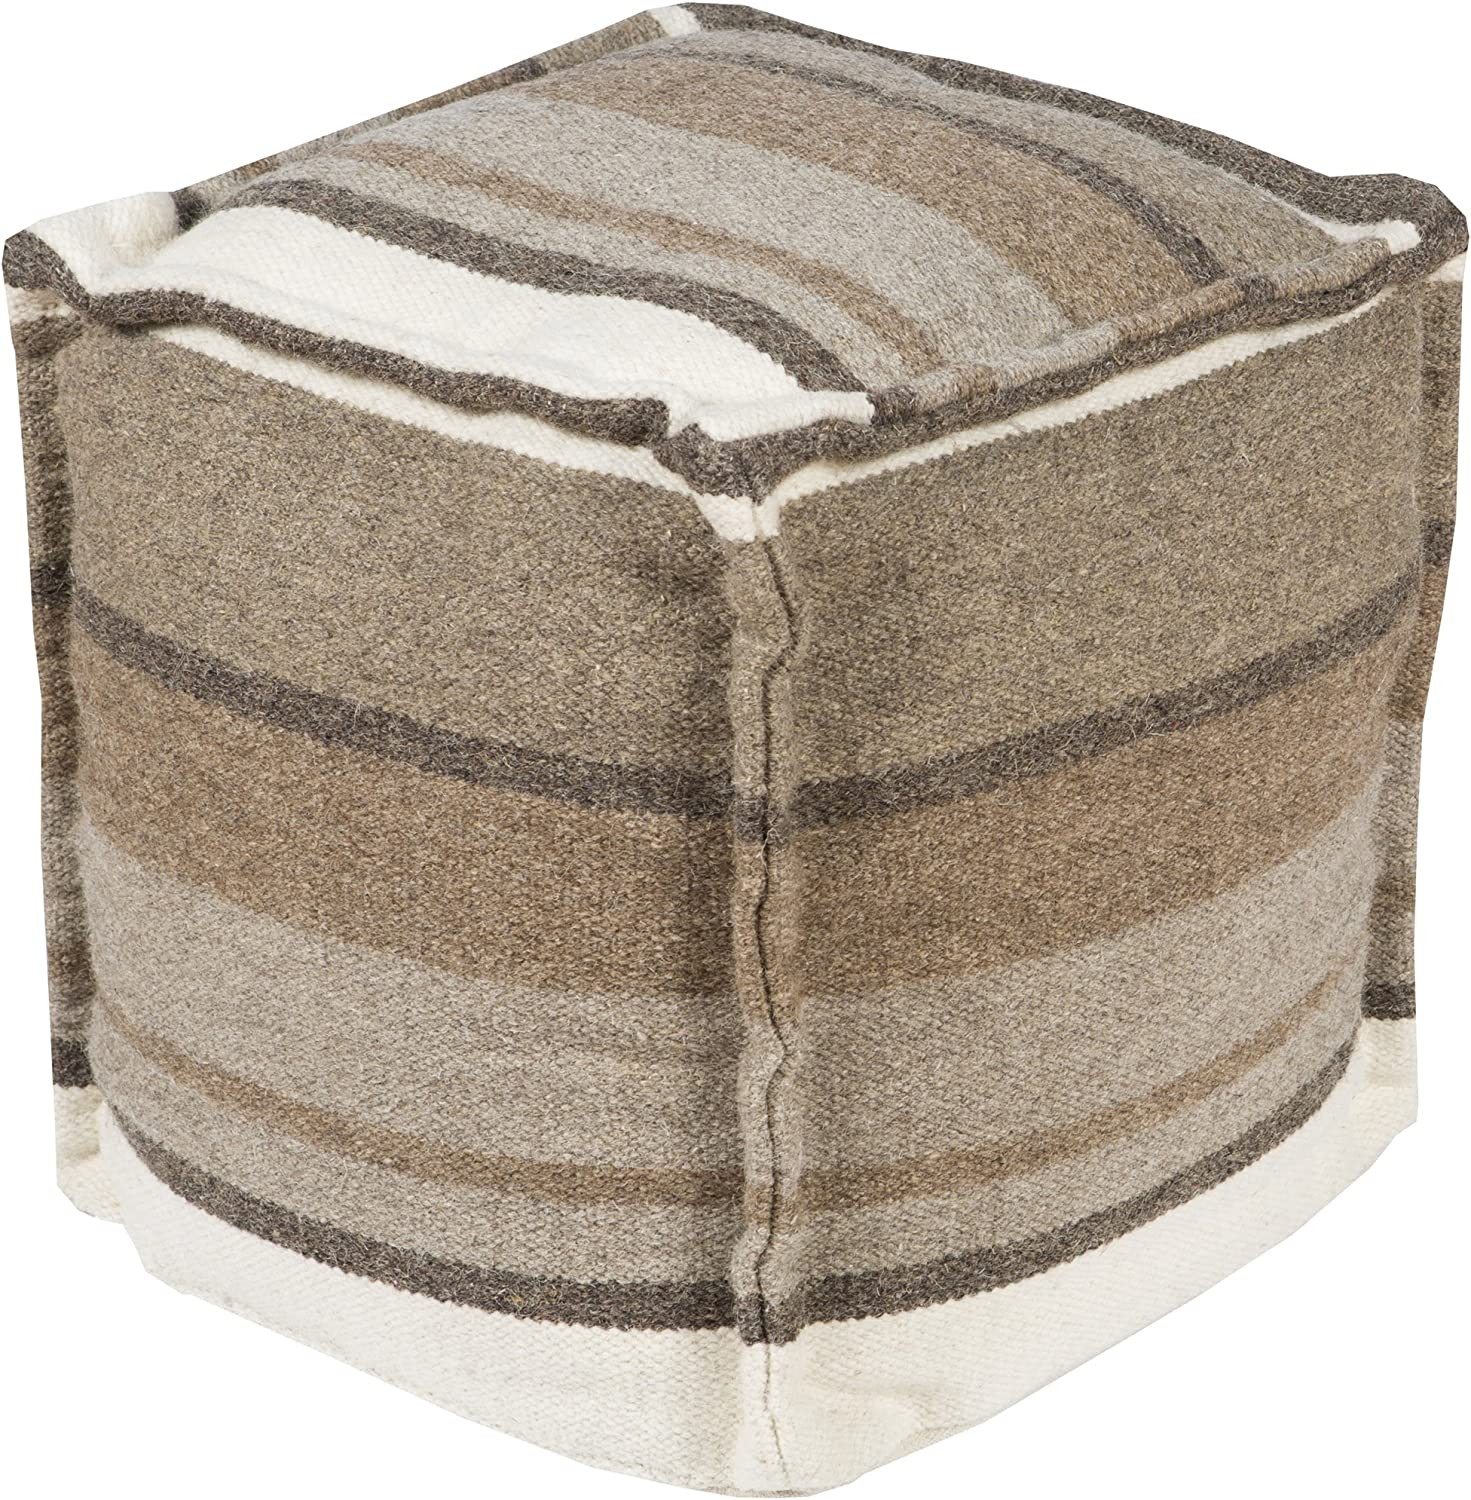 Natural 18 by 18 by 18-Inch Surya POUF-101 Decorative Pouf